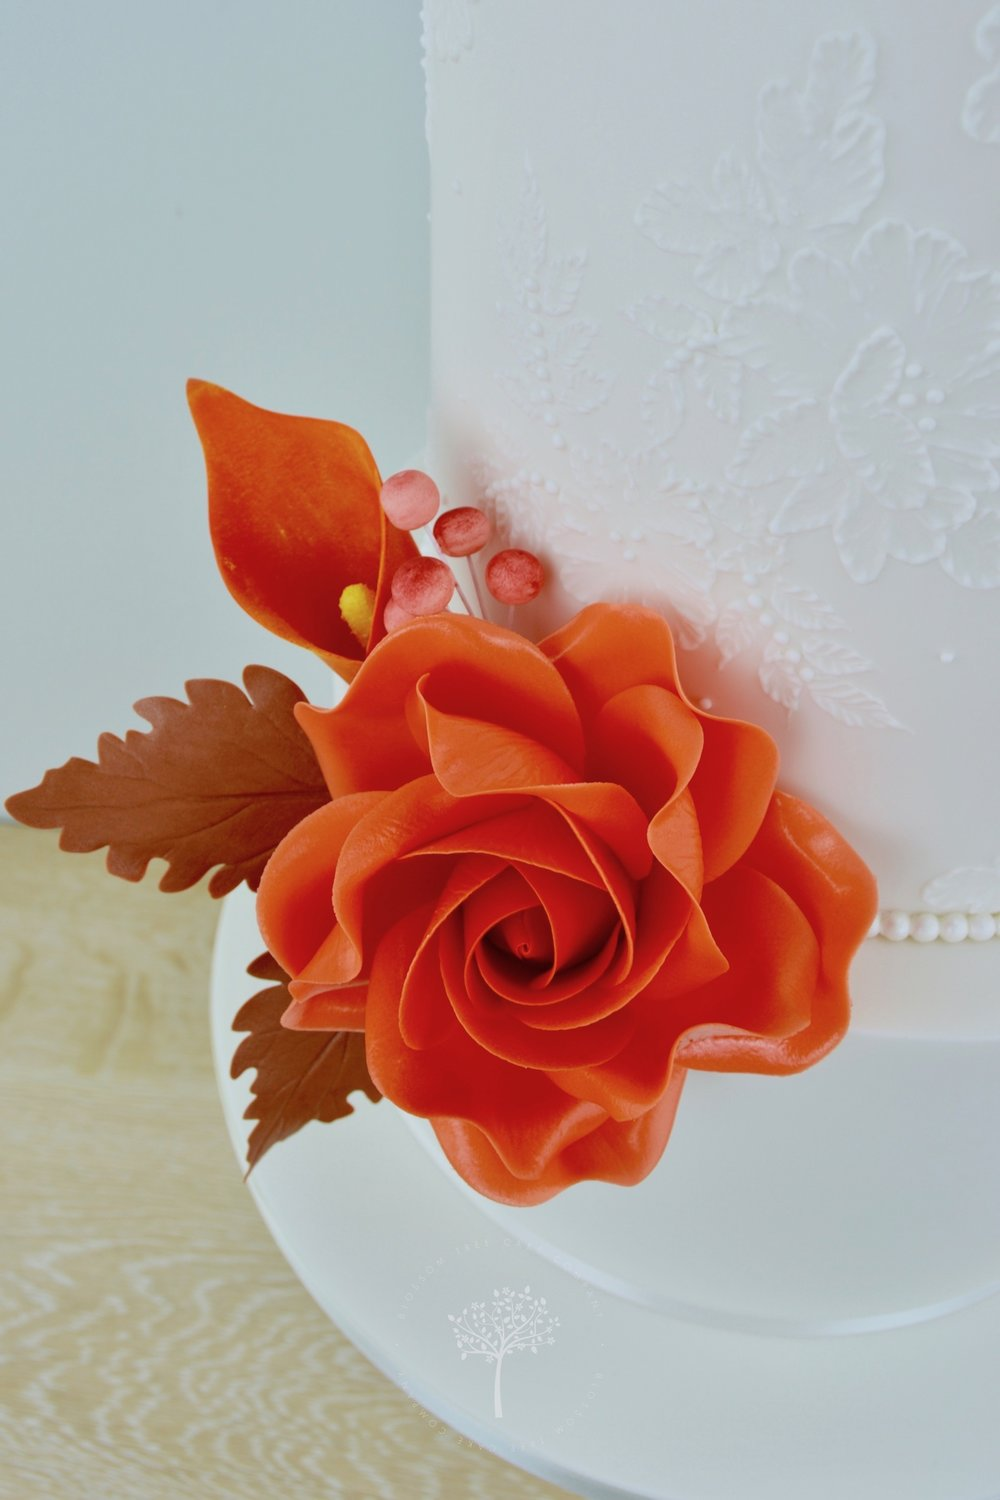 Autumn Lace wedding cake by Blossom Tree Cake Company Harrogate North Yorkshire - embroidery lace icing.jpg